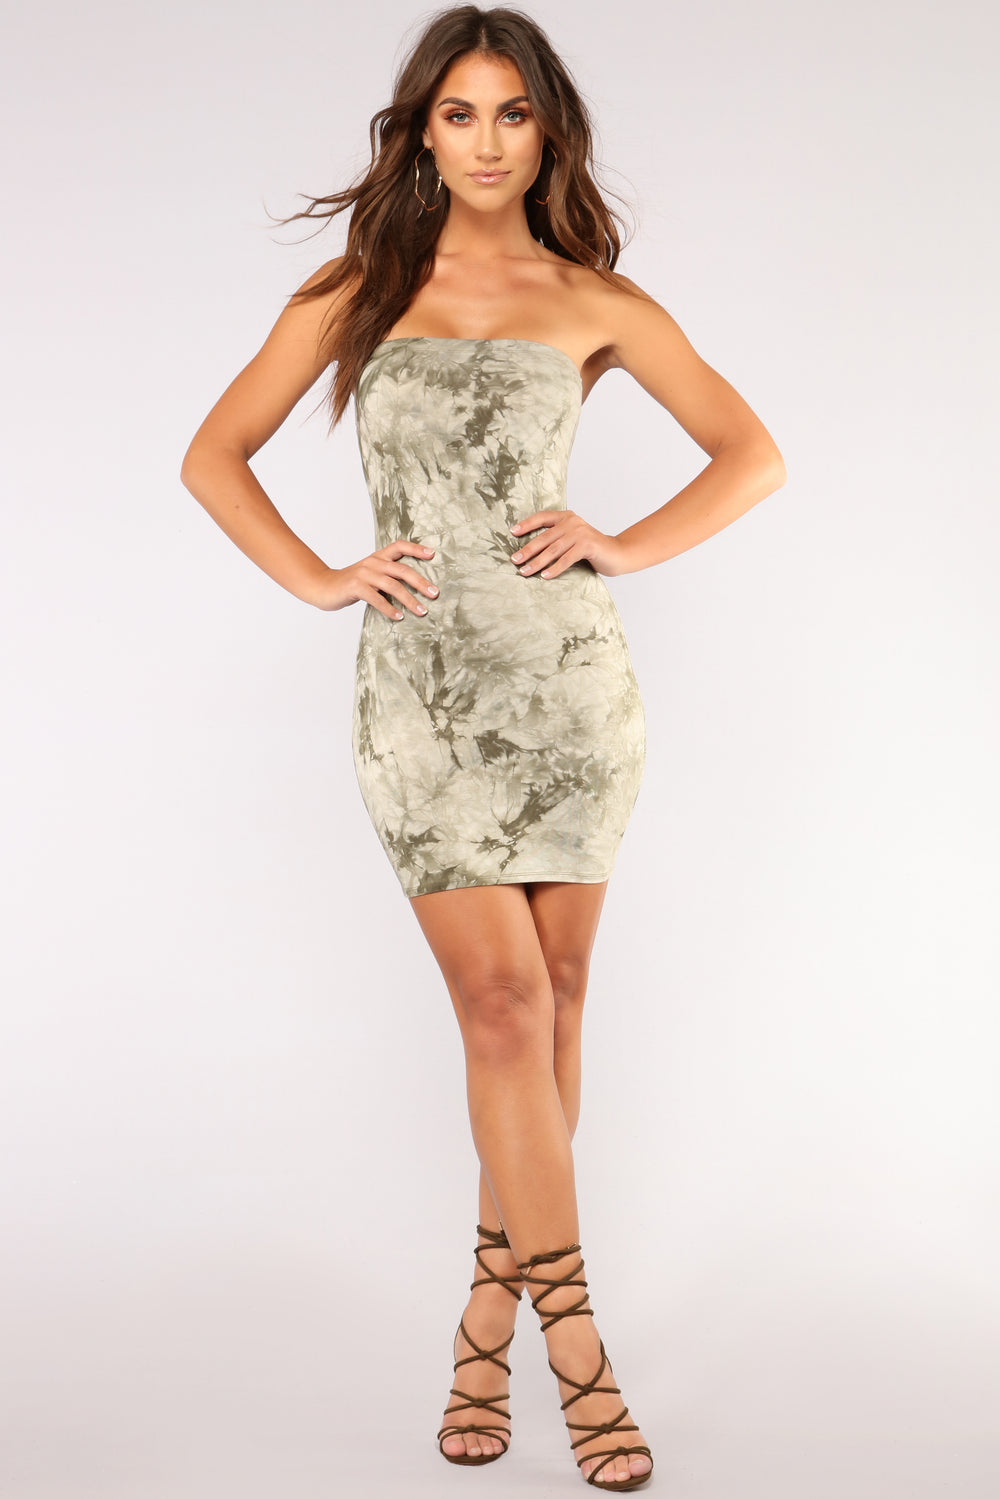 Commotion Tie Dye Dress - Olive